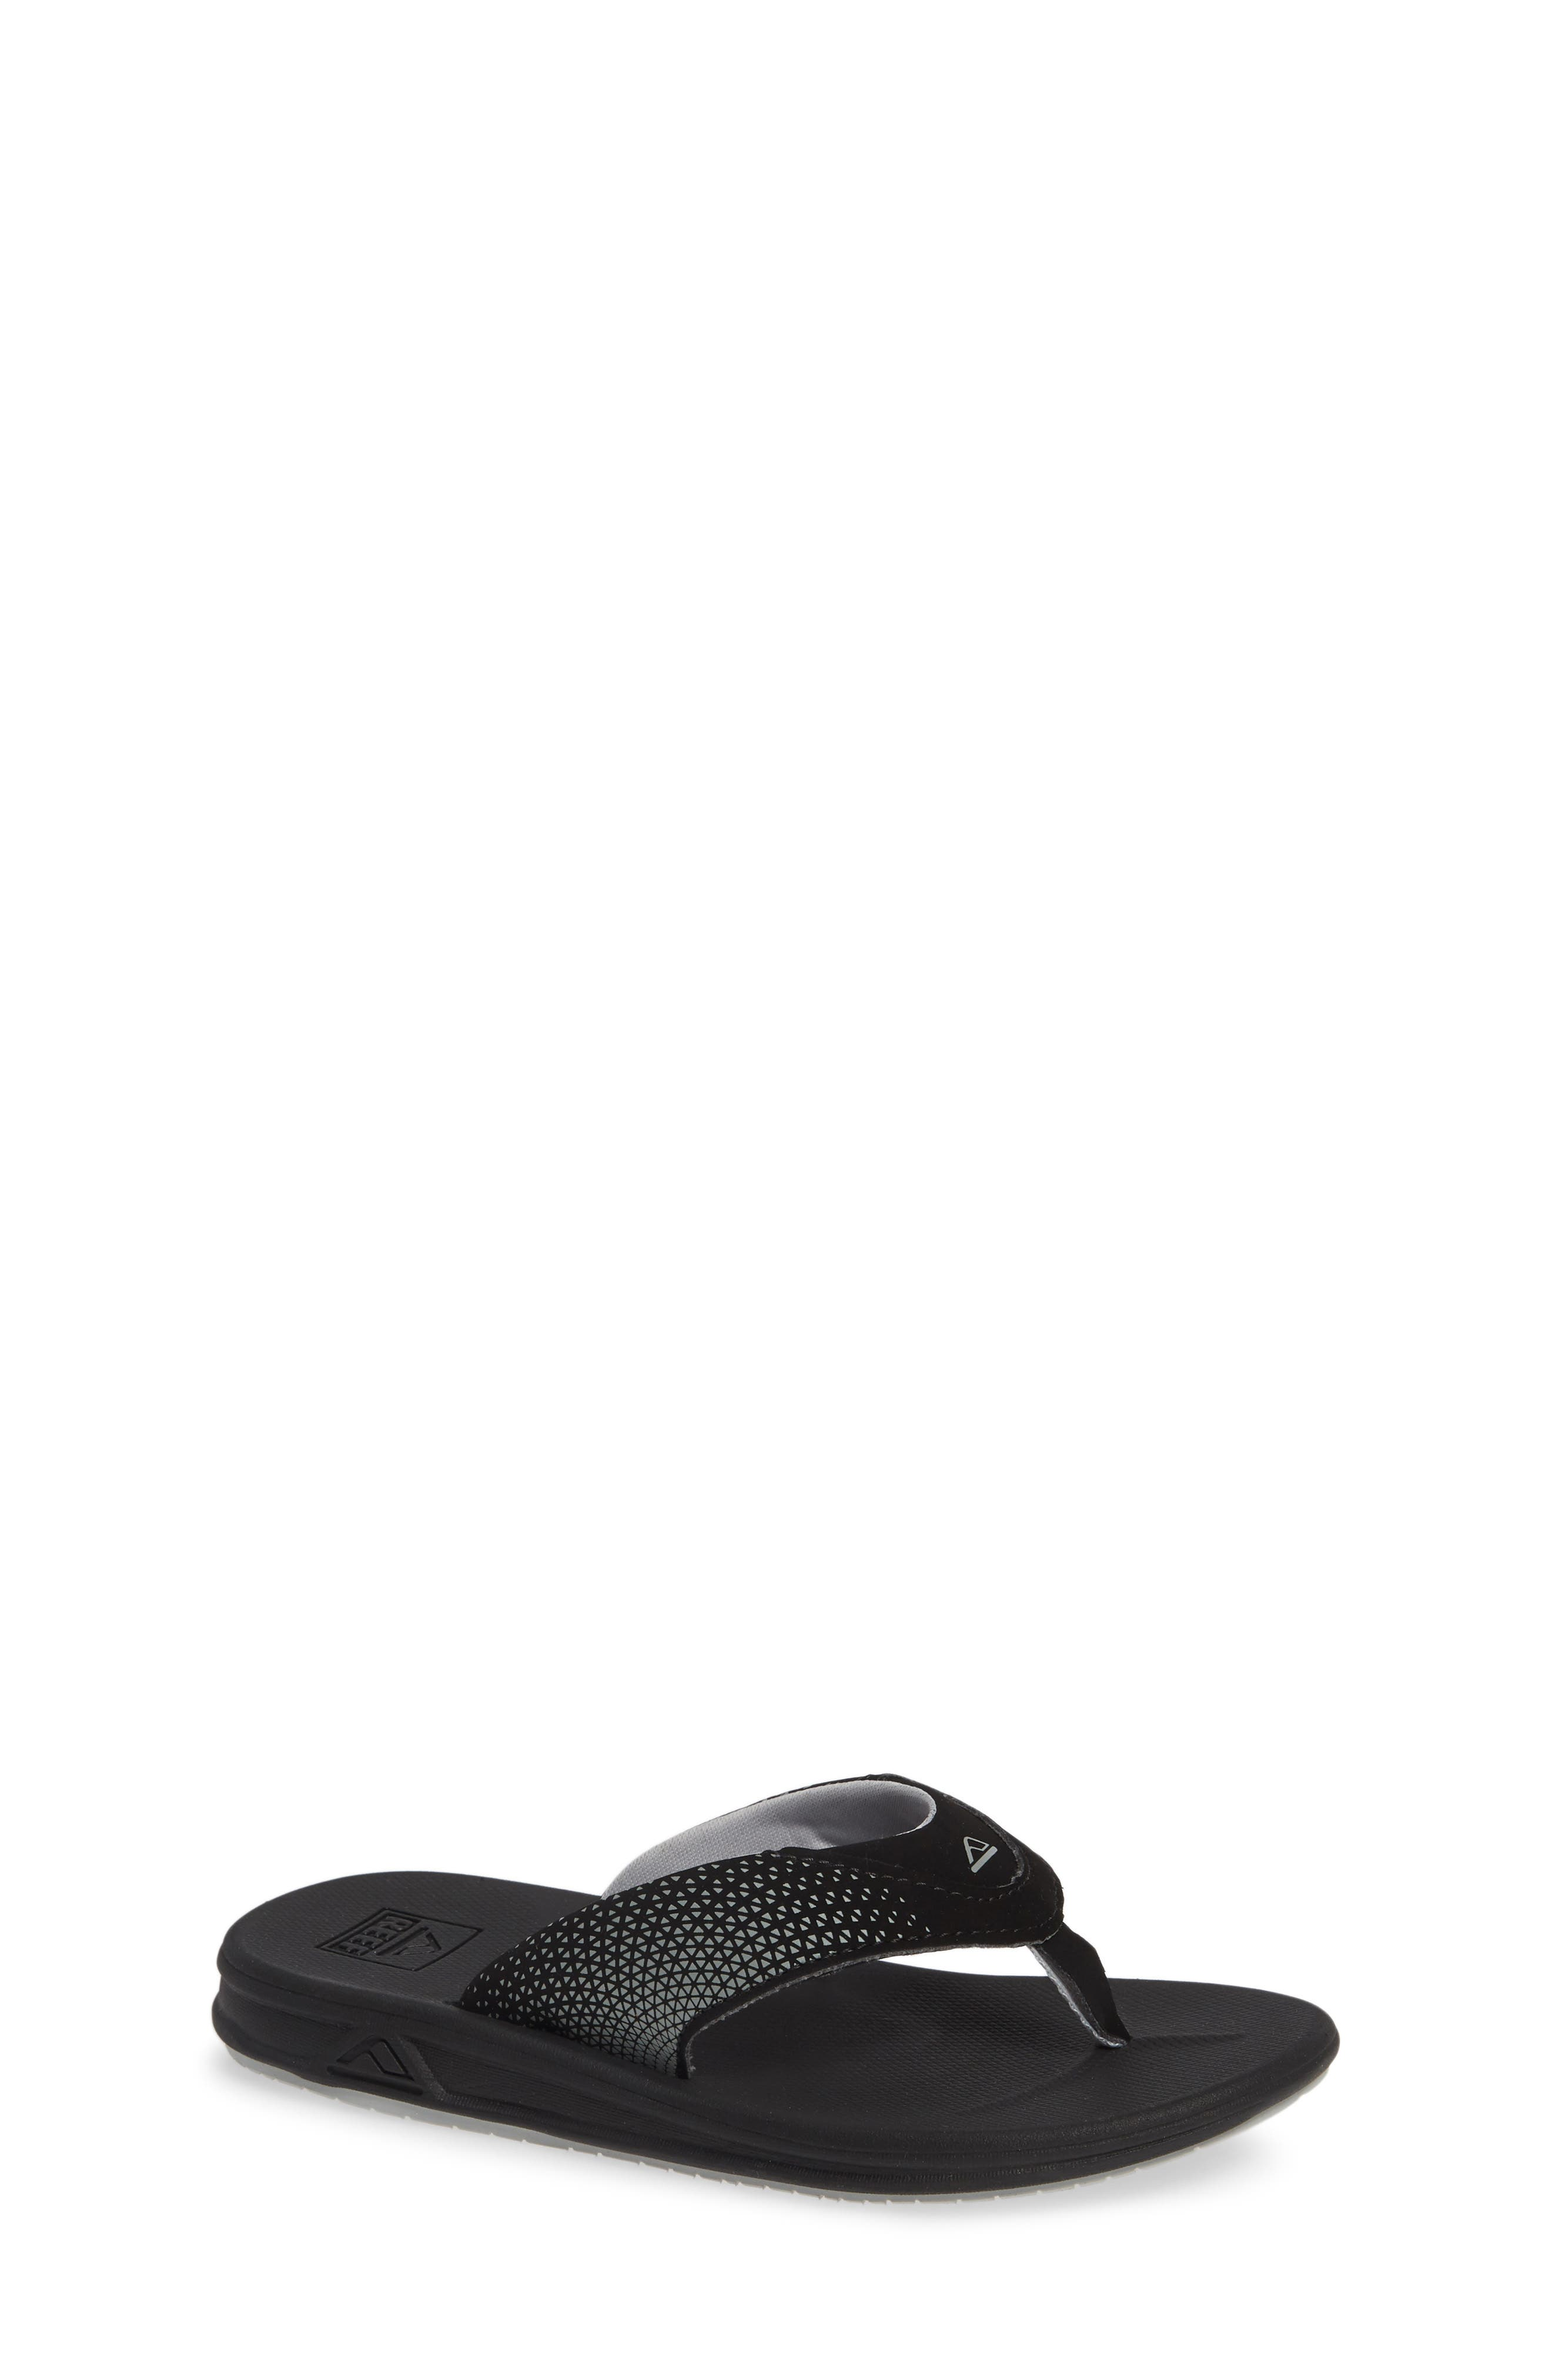 Grom Rover Water Friendly Sandal,                             Main thumbnail 1, color,                             BLACK